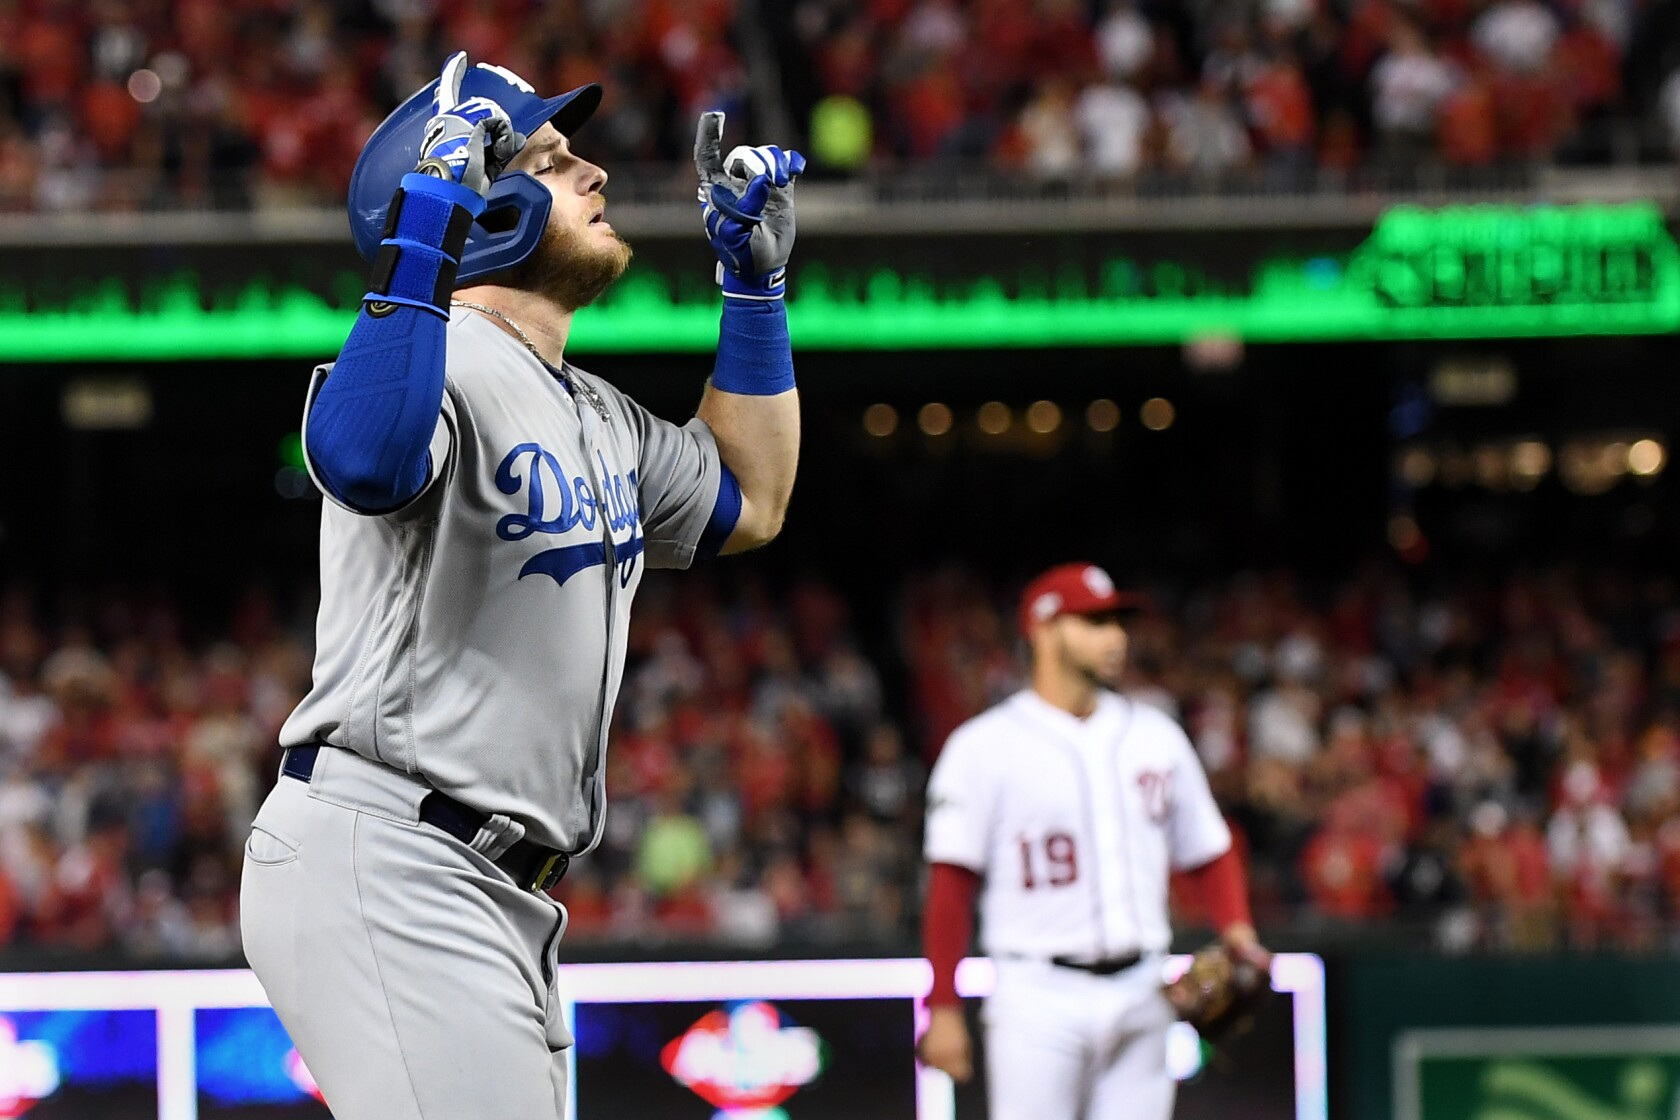 Column: Russell Martin the unlikely hero as he saves Dodgers from the brink of disaster